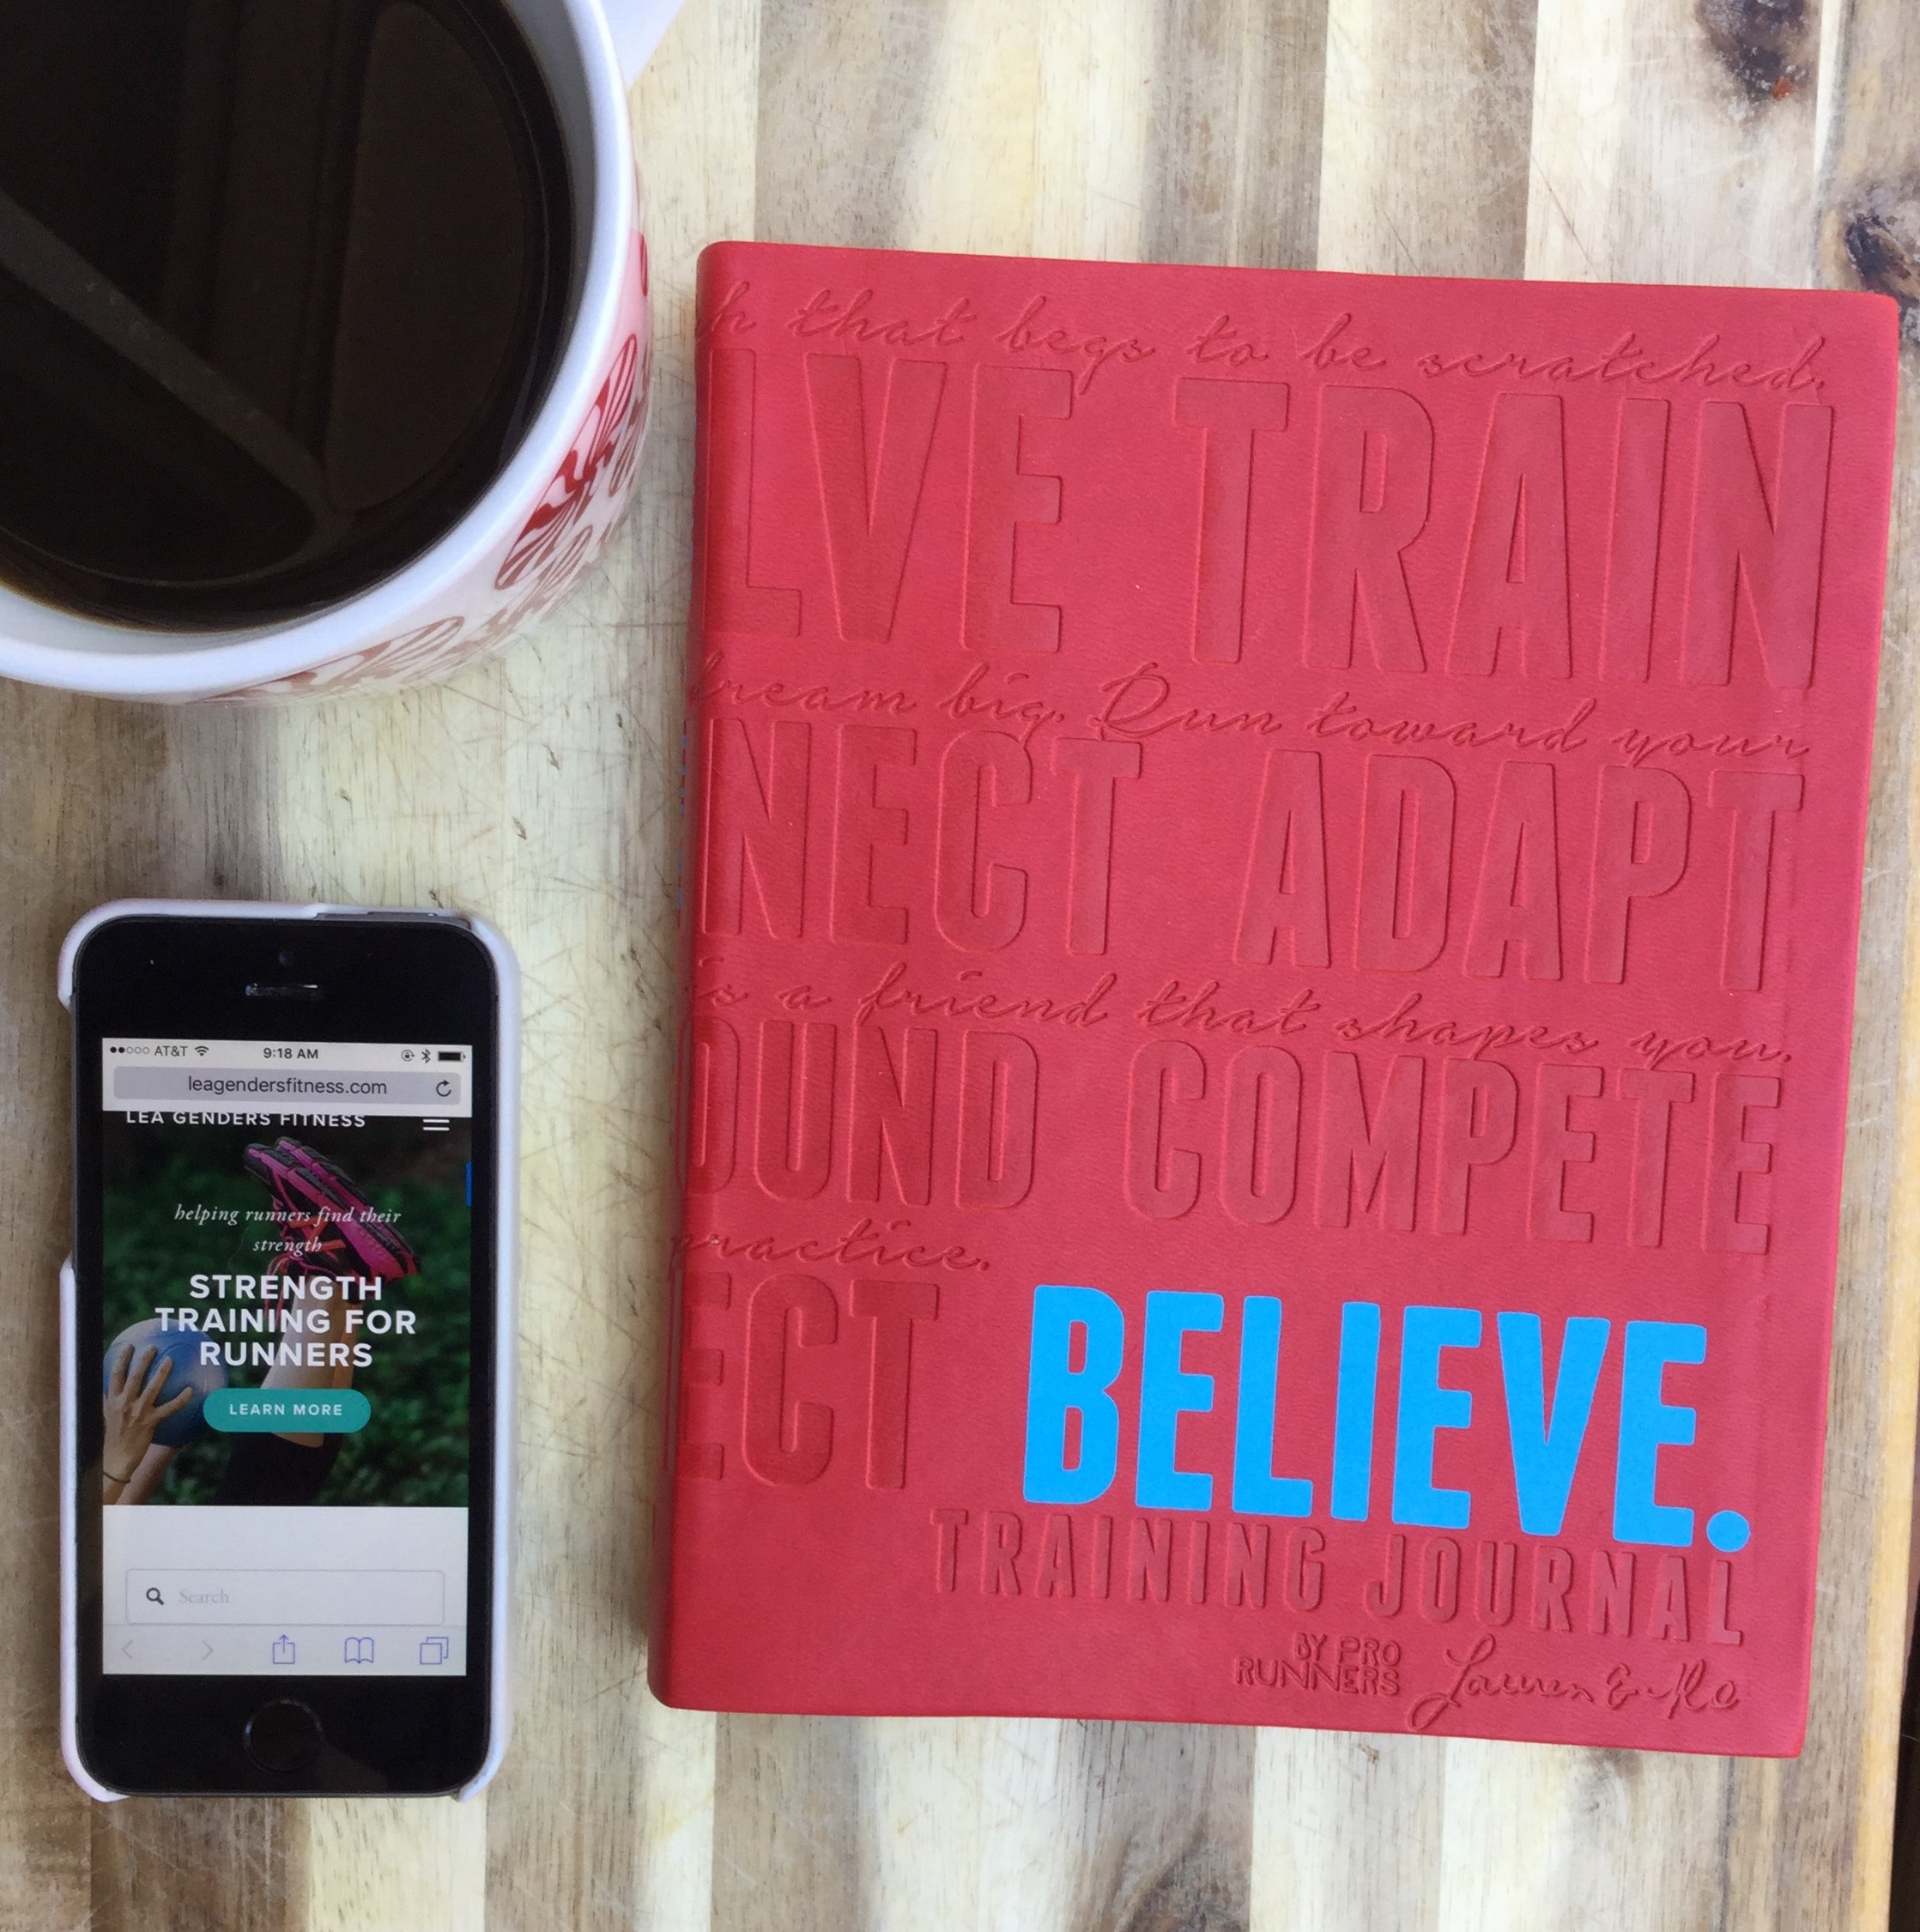 Enter to win a believe training journal giveaway